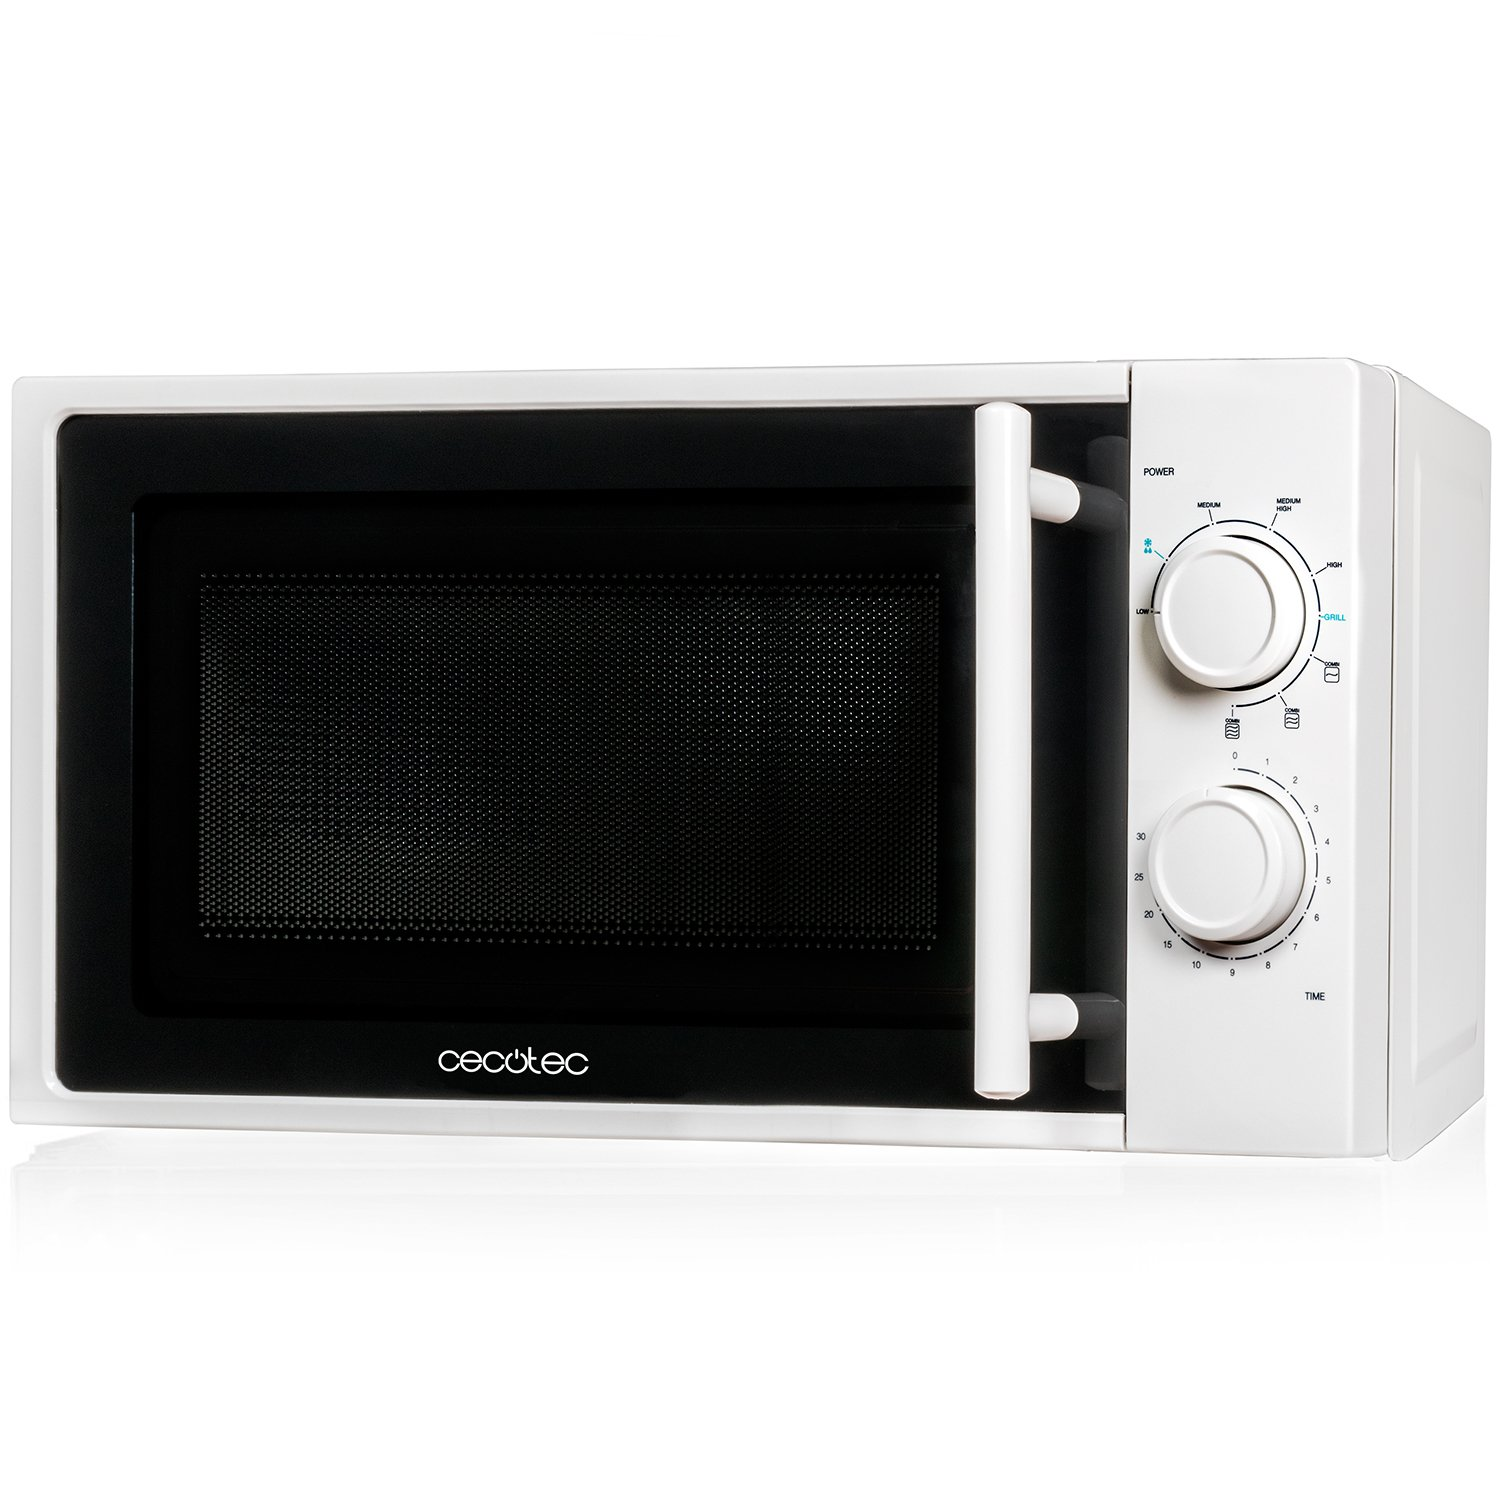 Microondas con grill, input 1200 W, output 700W, grill de 900W, 20 l, 9 niveles, Cecotec Grill product image